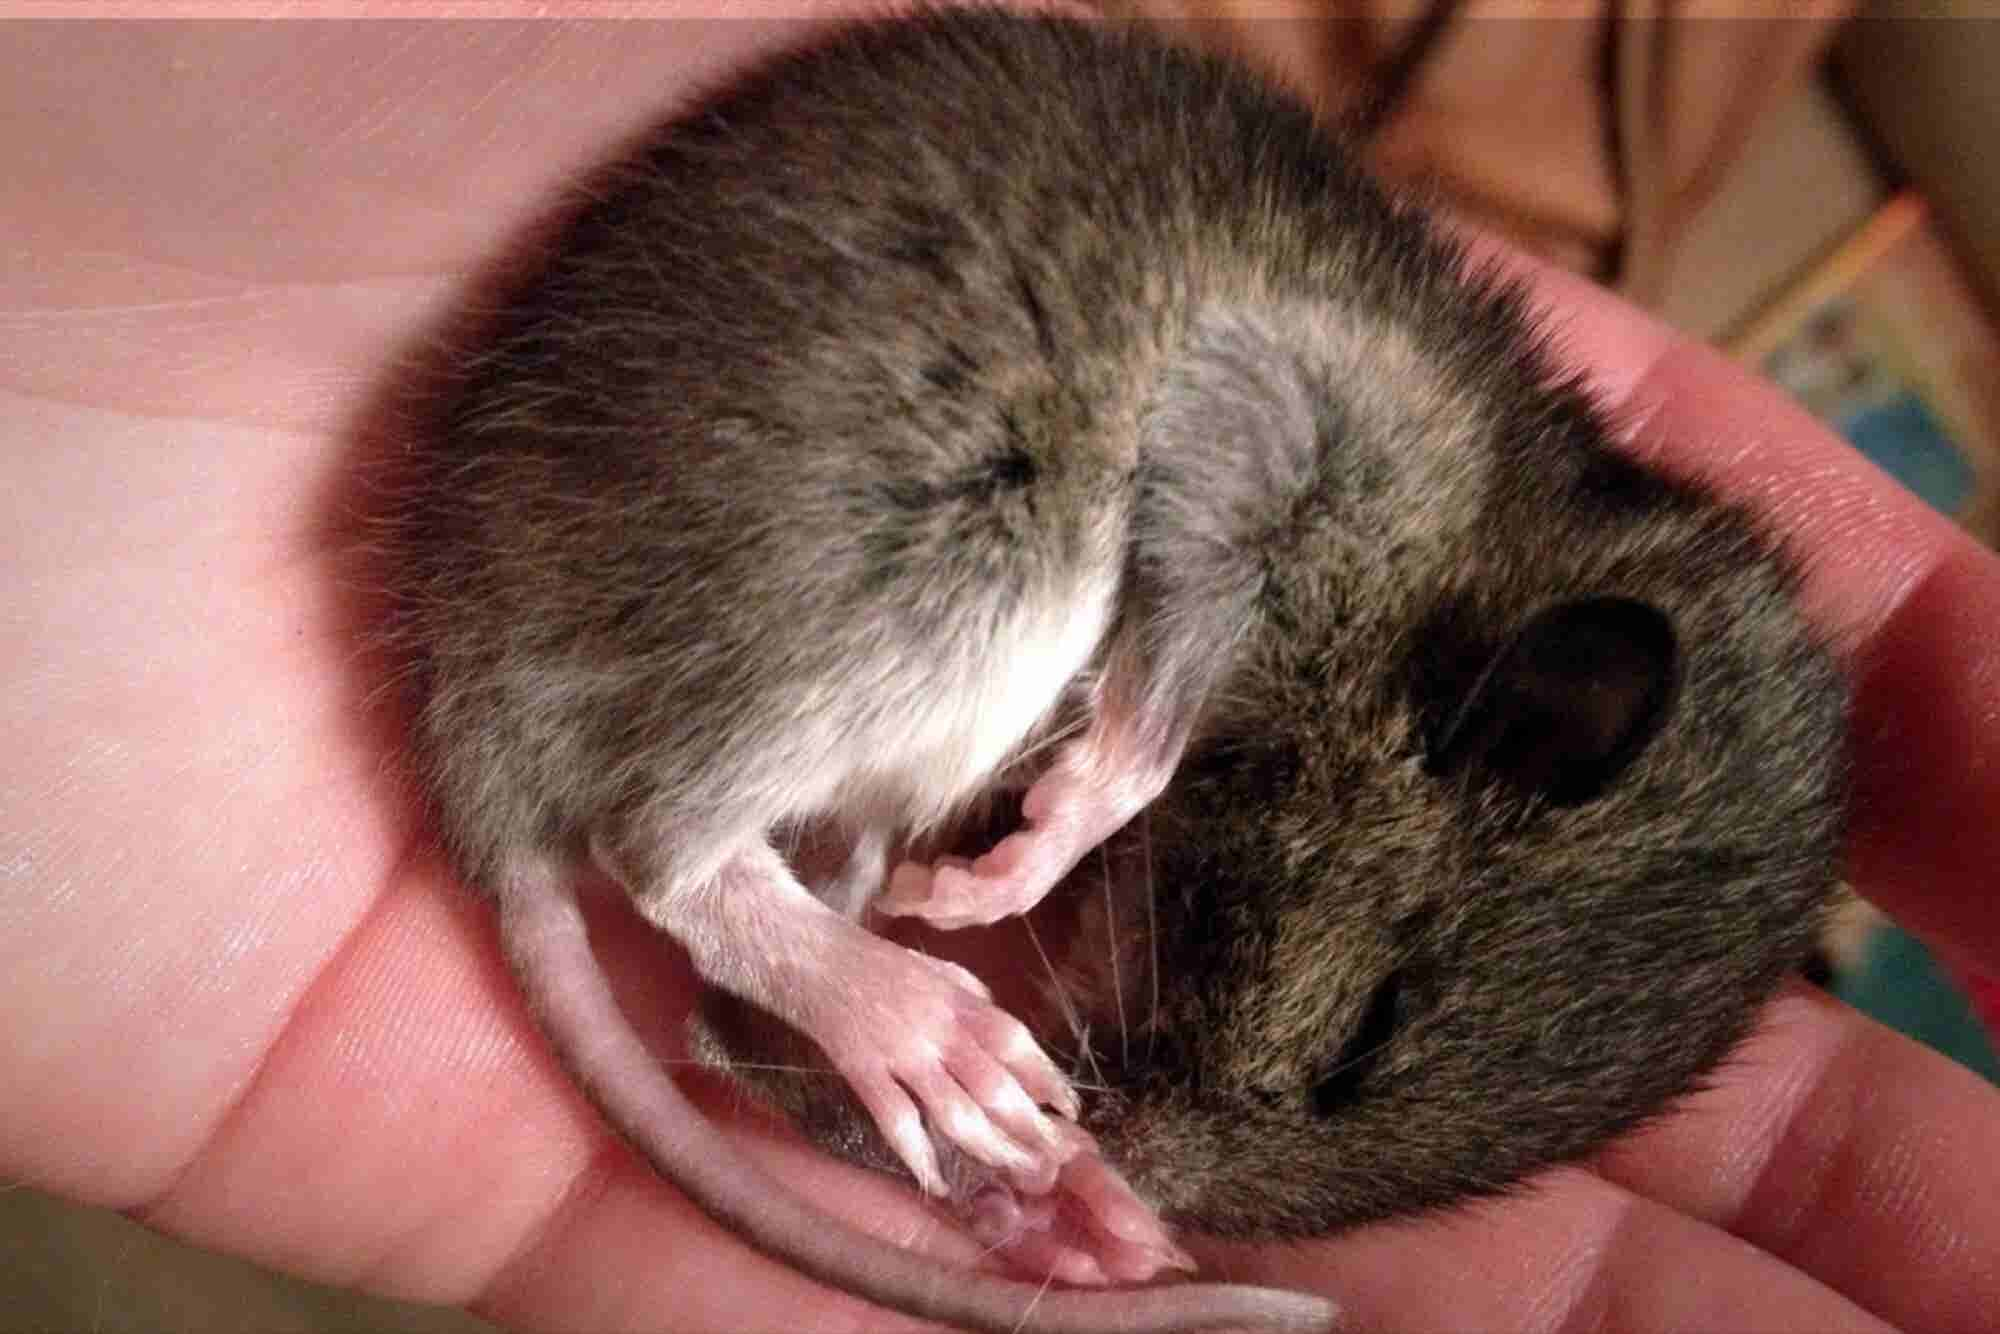 New Study Finds Rats May Plan for the Future While Dreaming